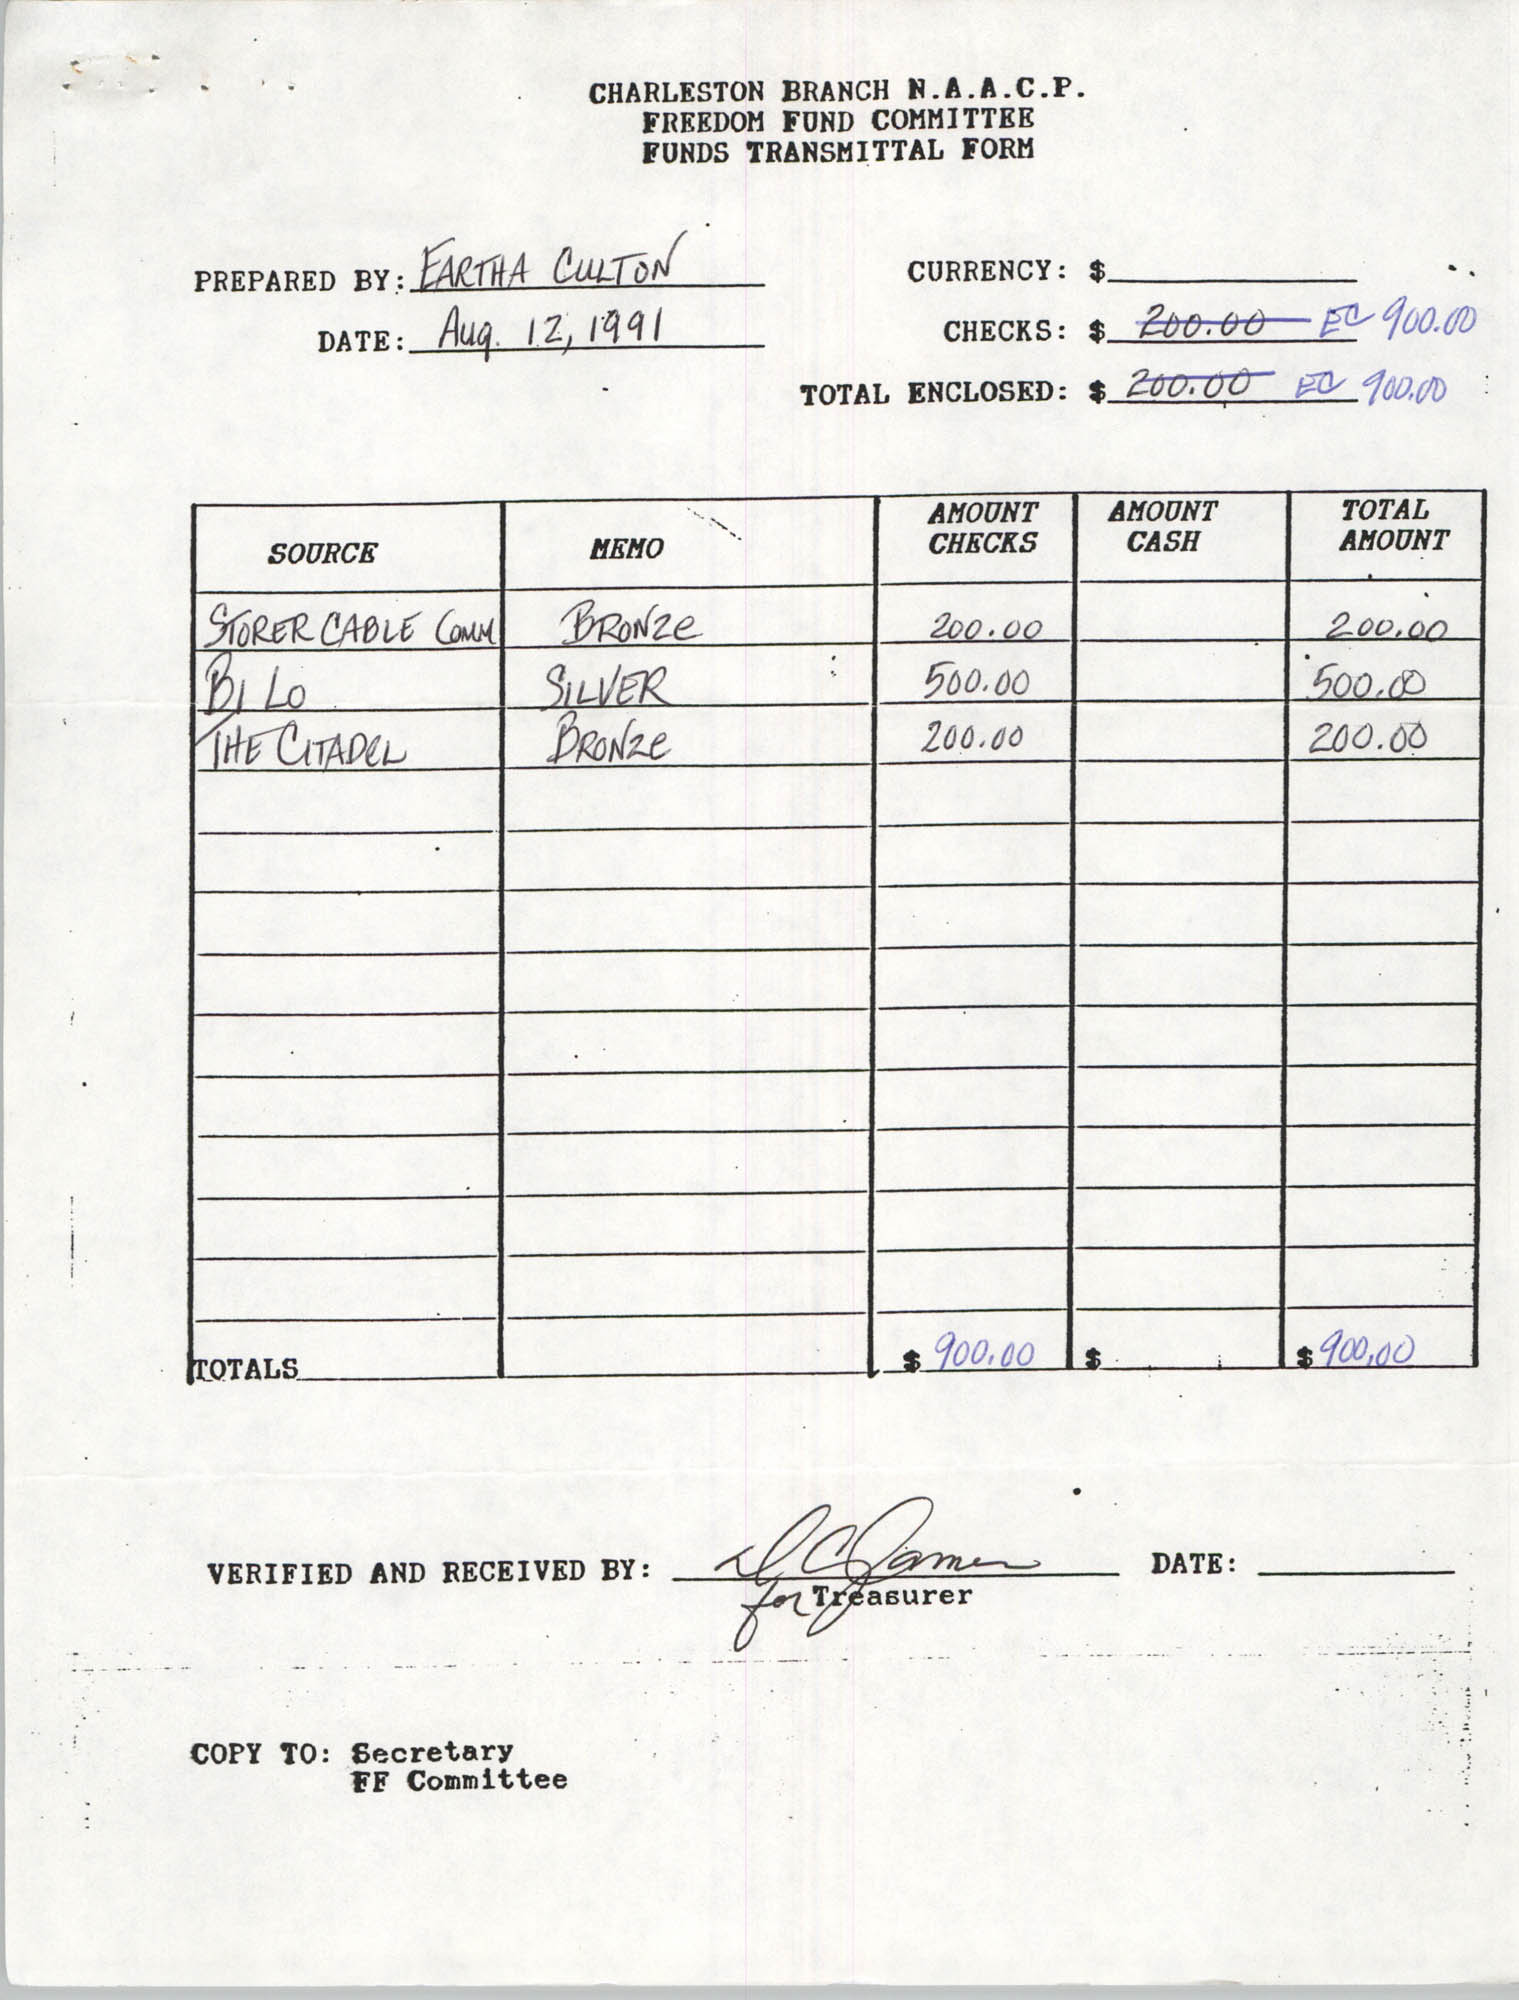 Charleston Branch of the NAACP Funds Transmittal Forms, August 1991, Page 14